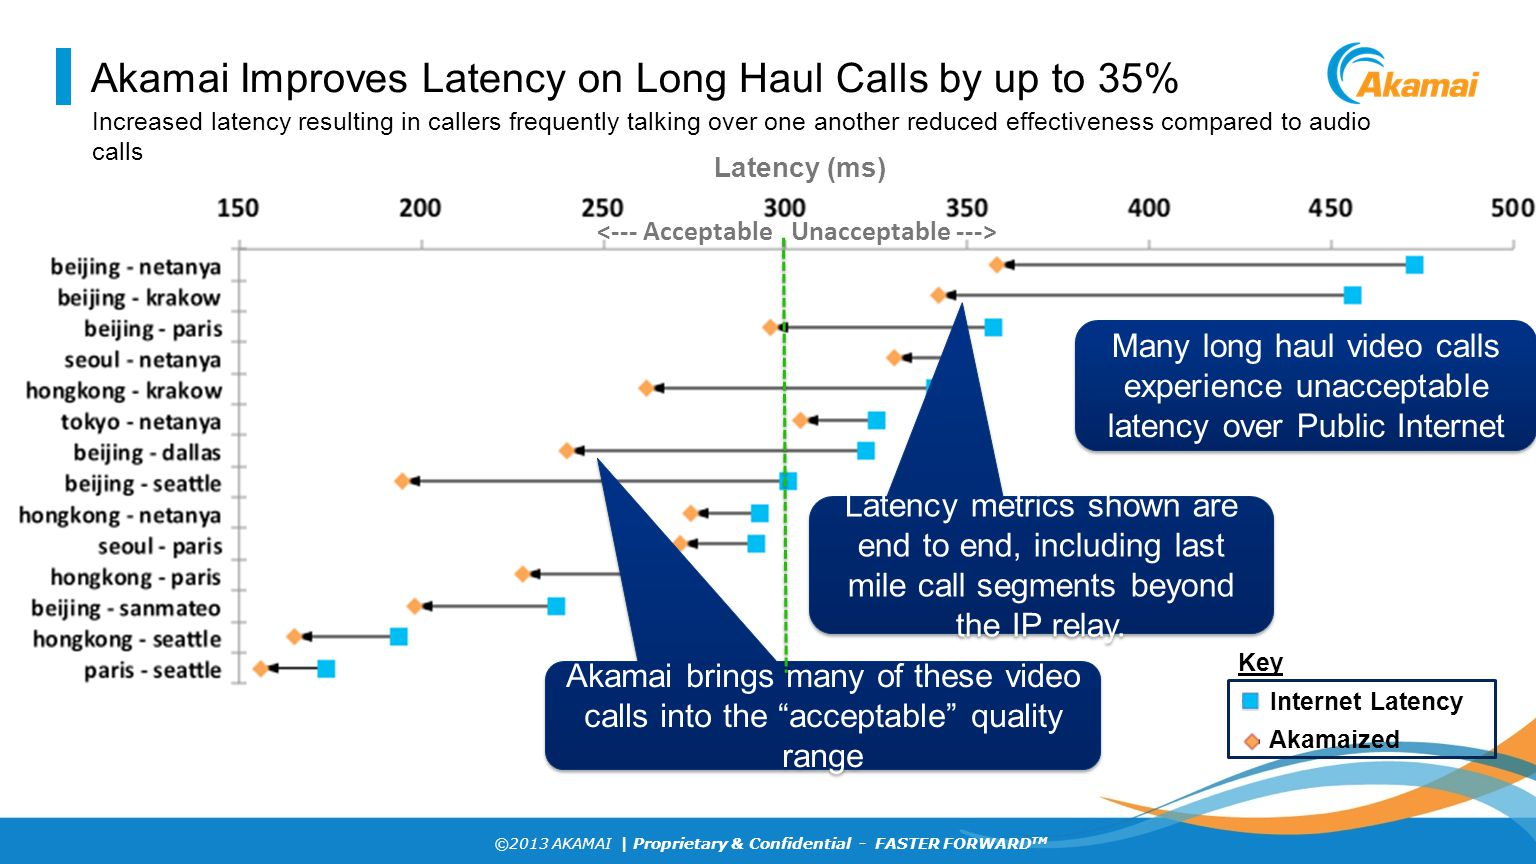 Akamai Improves Latency on Long Haul Calls by up to 35%